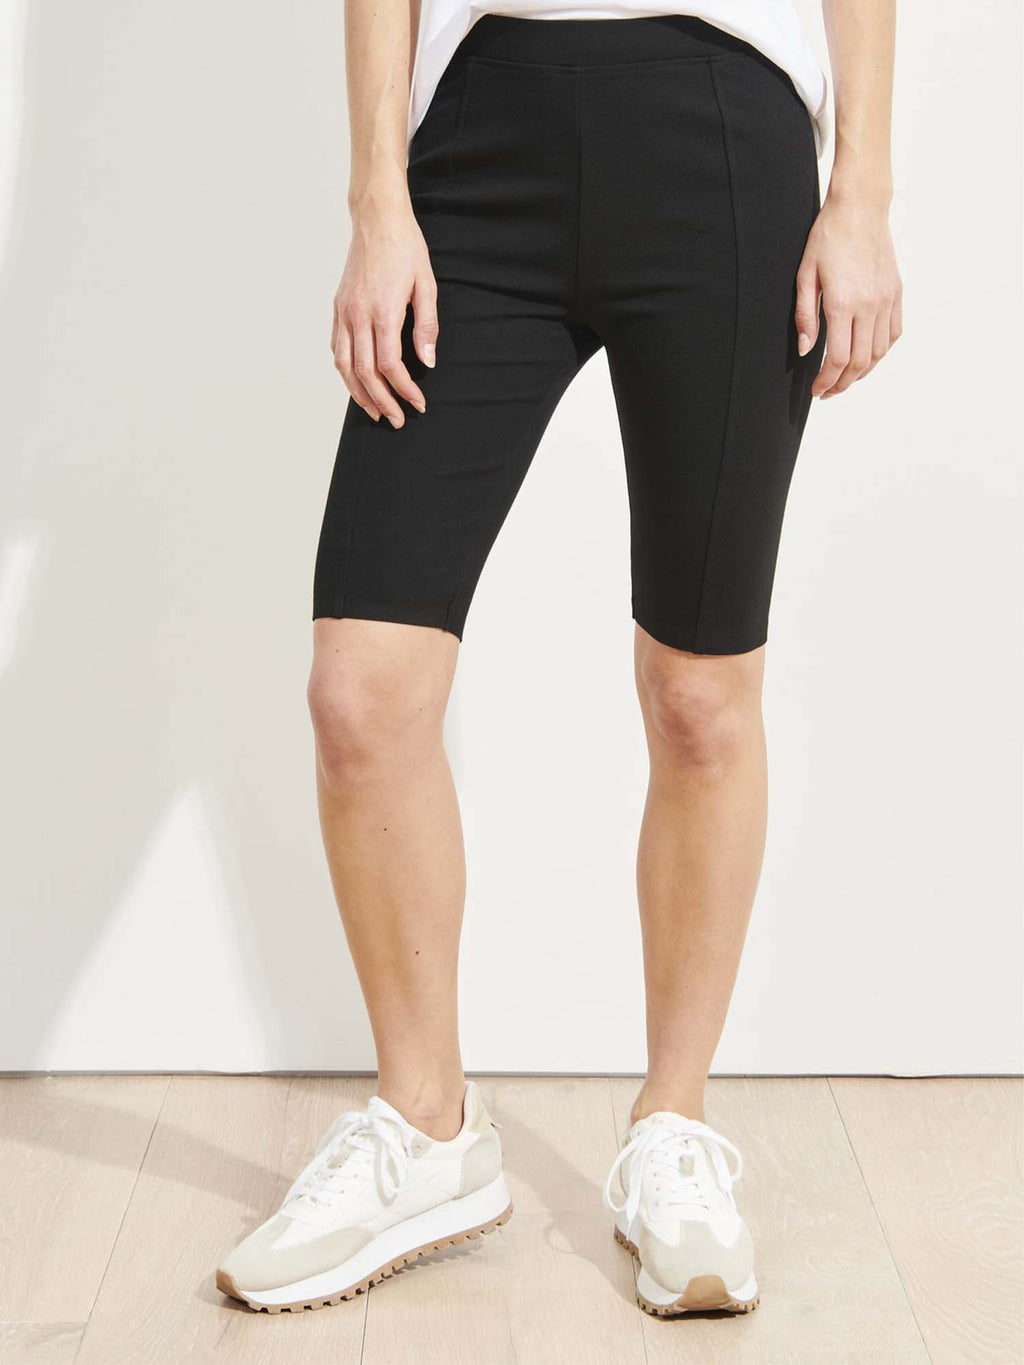 Patrick Assaraf Stretch Bike Short